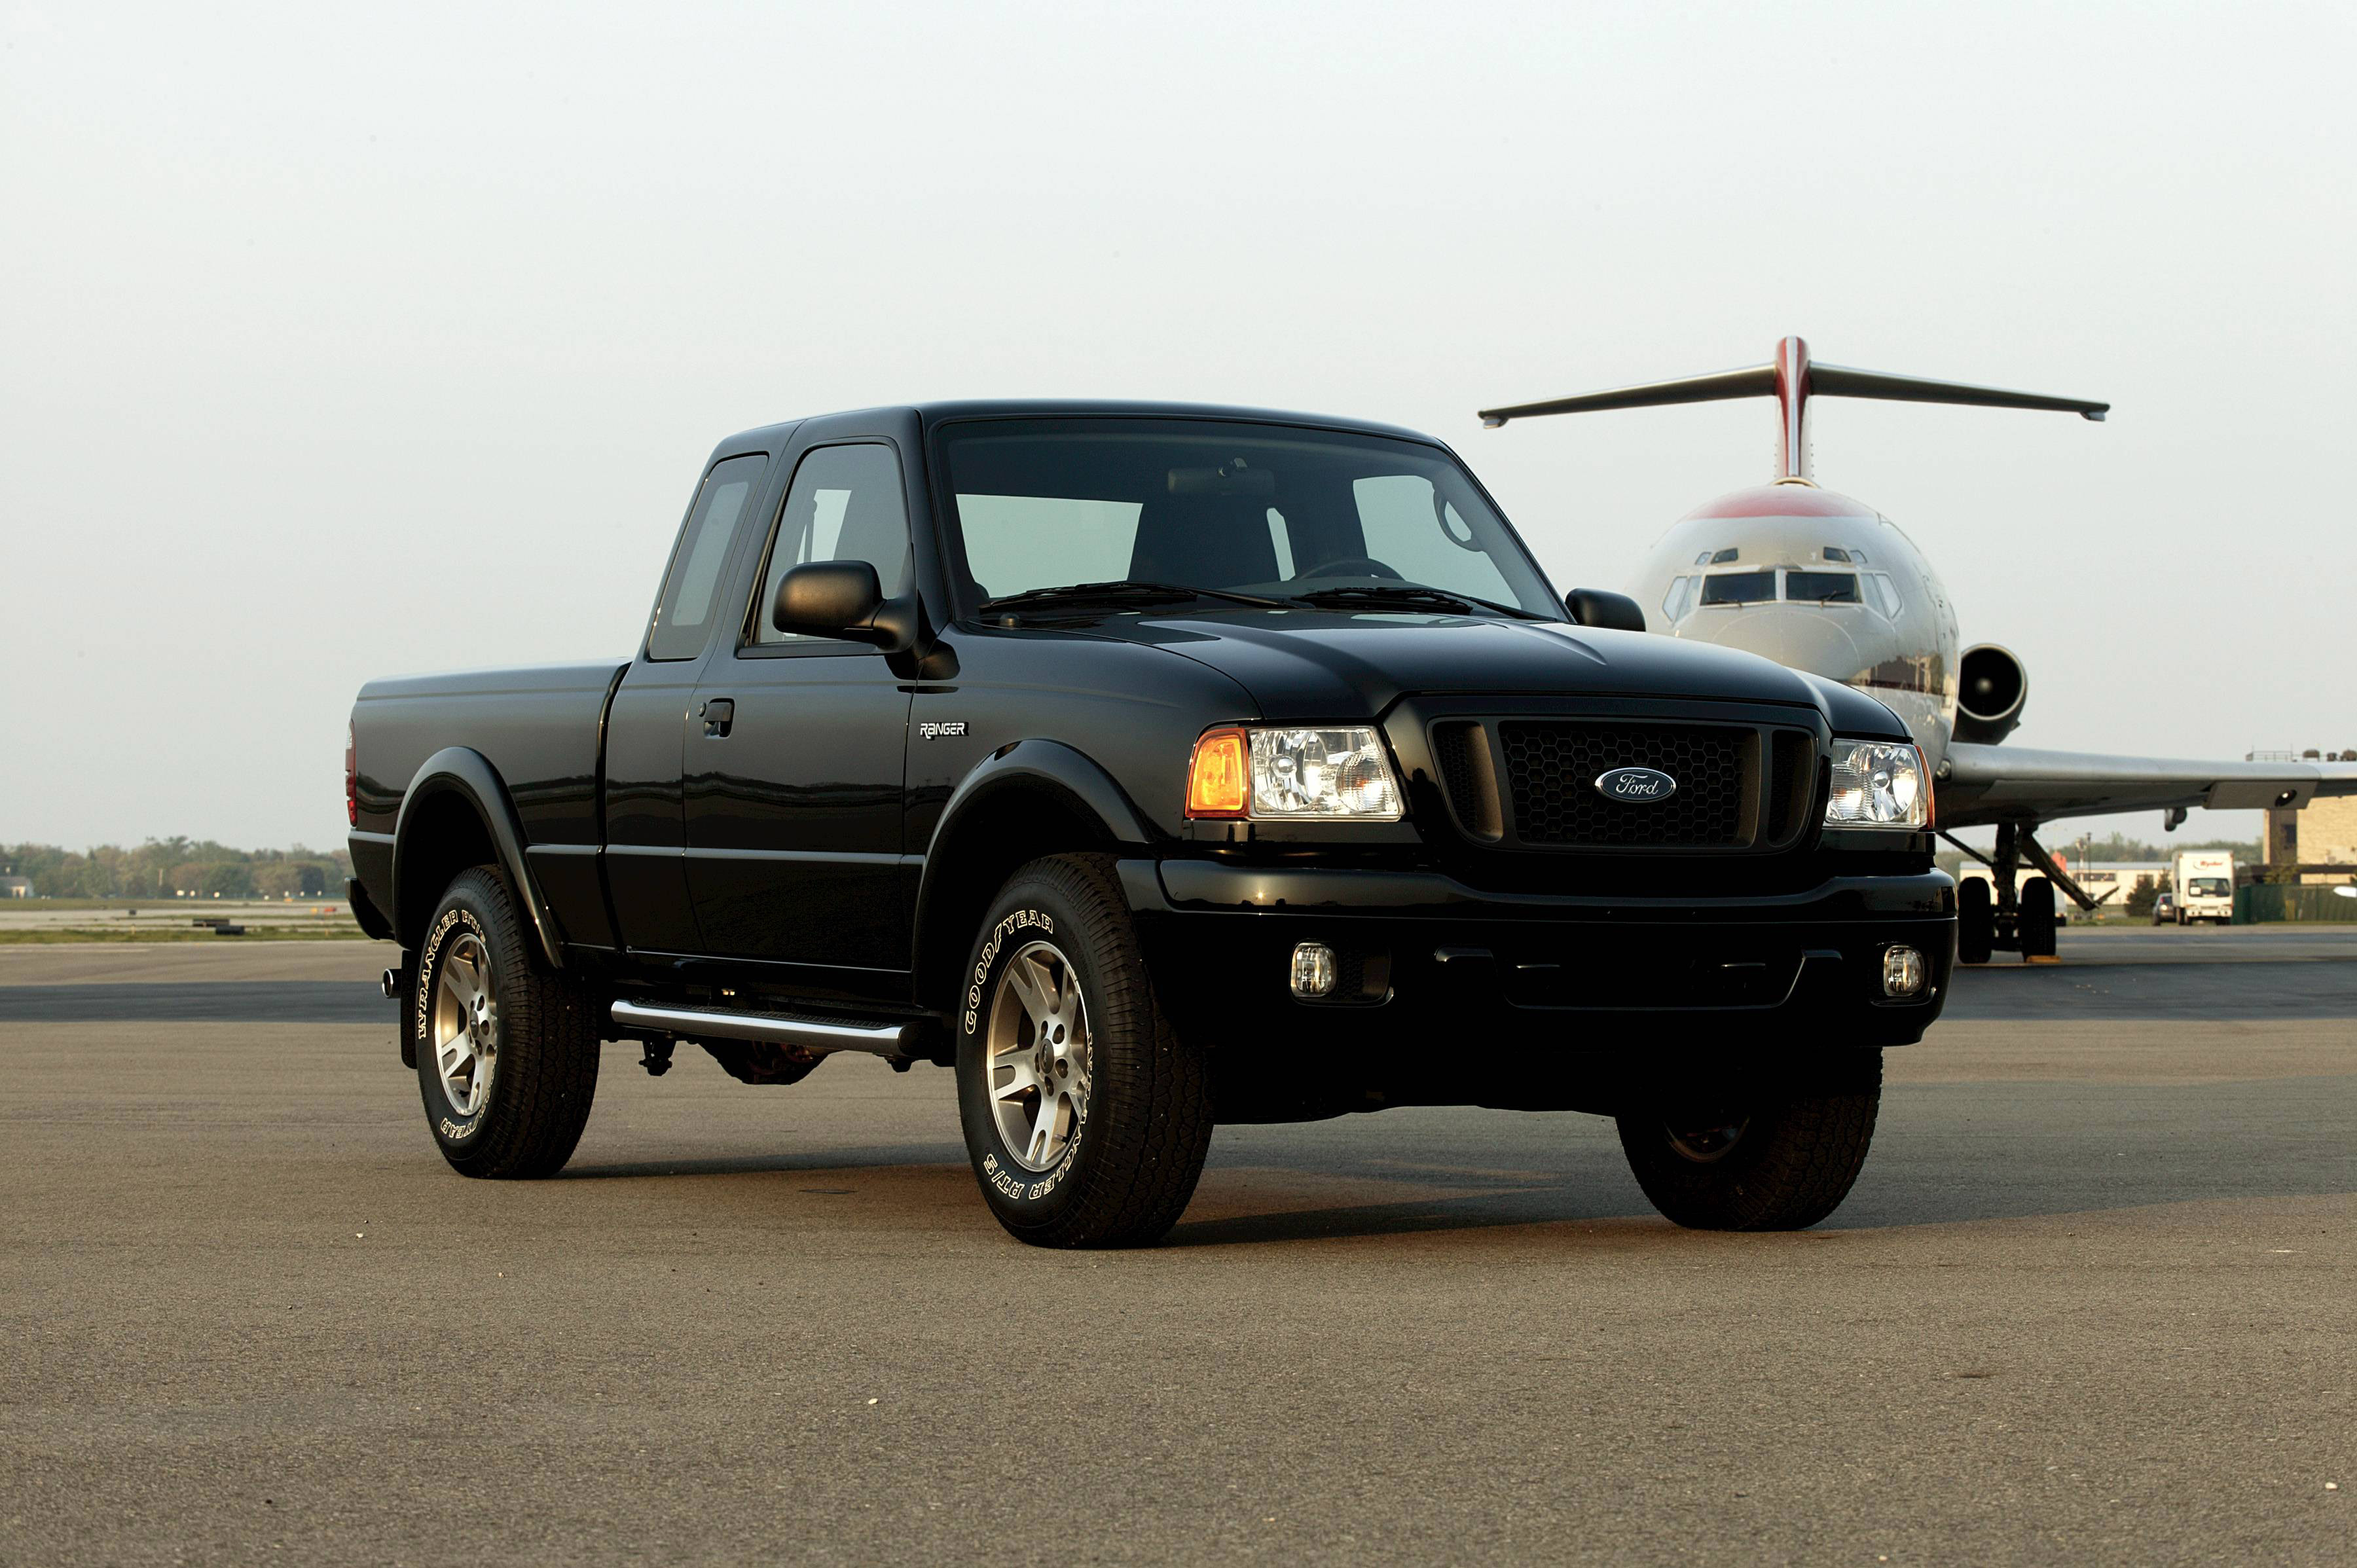 0711st Custom 1999 Ford Ranger additionally Restoring My Beloved Jeep Cherokee Sport 98 A 204138 also 1998 Jeep Grand Cherokee Overview C2410 together with 1308 1999 Dodge Ram 3500 Wine To Dine To Pipeline in addition 2011 Jeep Grand Cherokee 2004 Lifted. on 1999 cherokee lifted